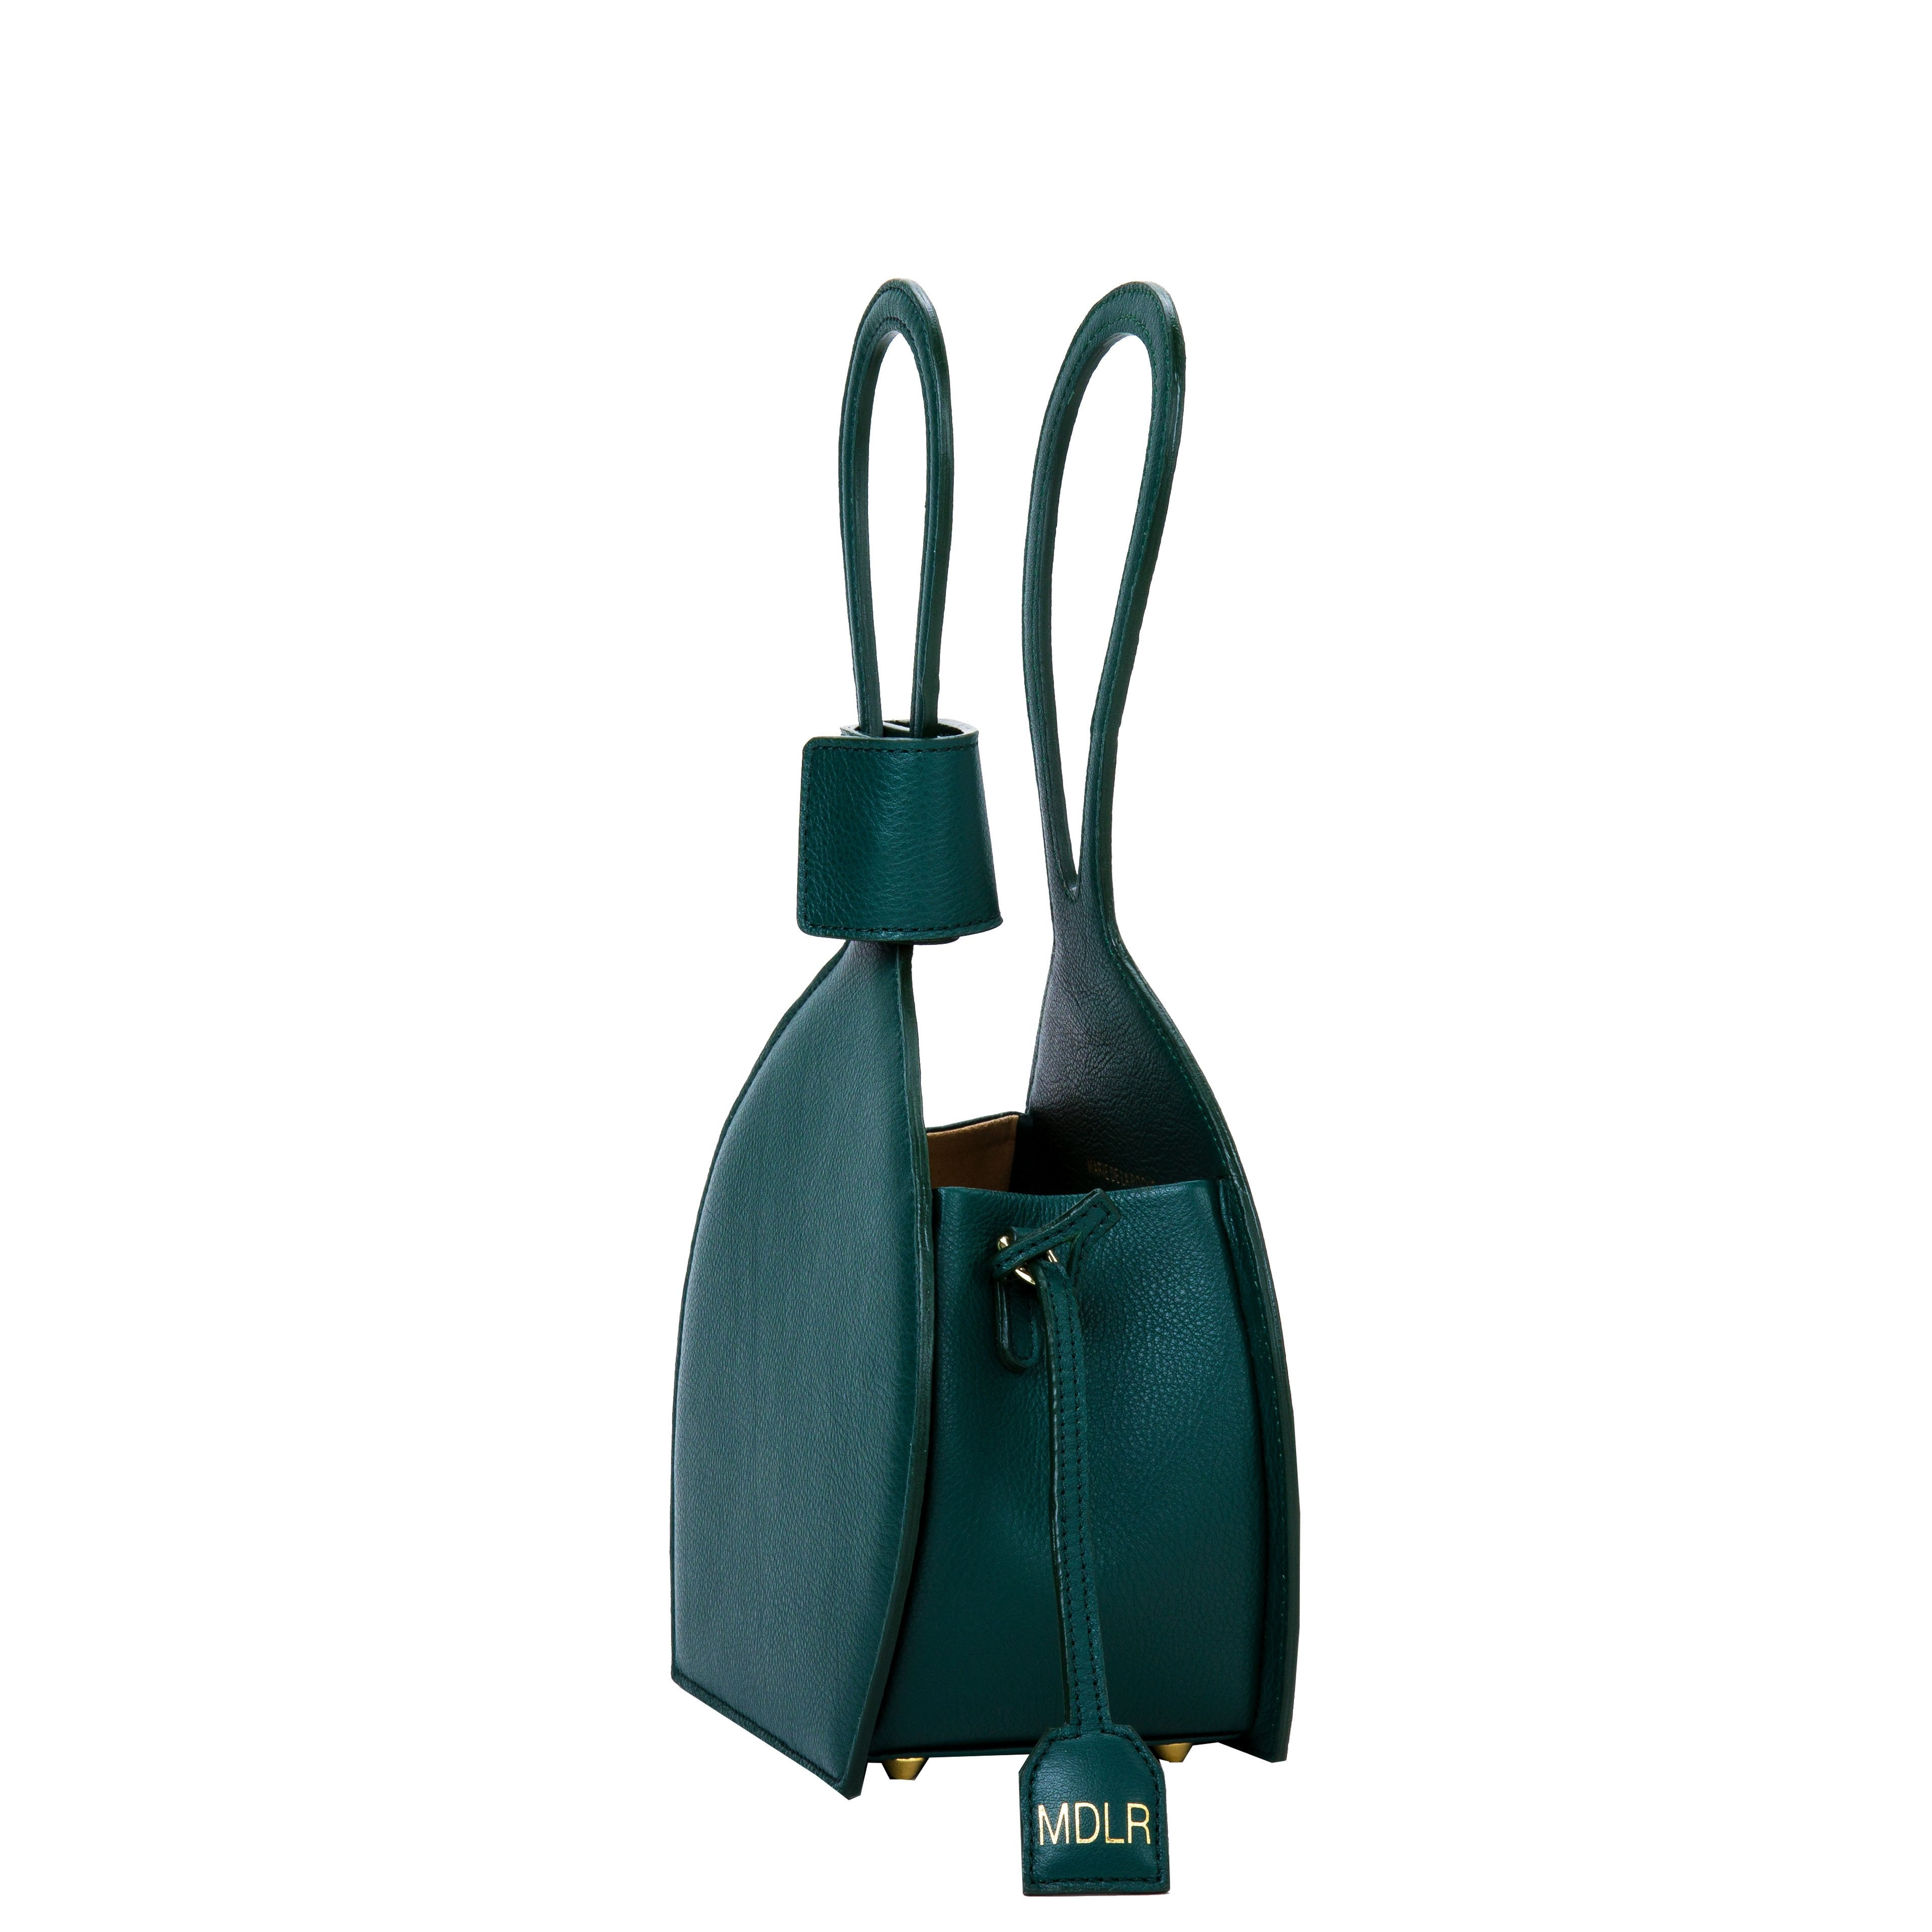 ATENA GREEN PURSE-SLING BAG, a green bag, handbag with minimalist look from MDLR